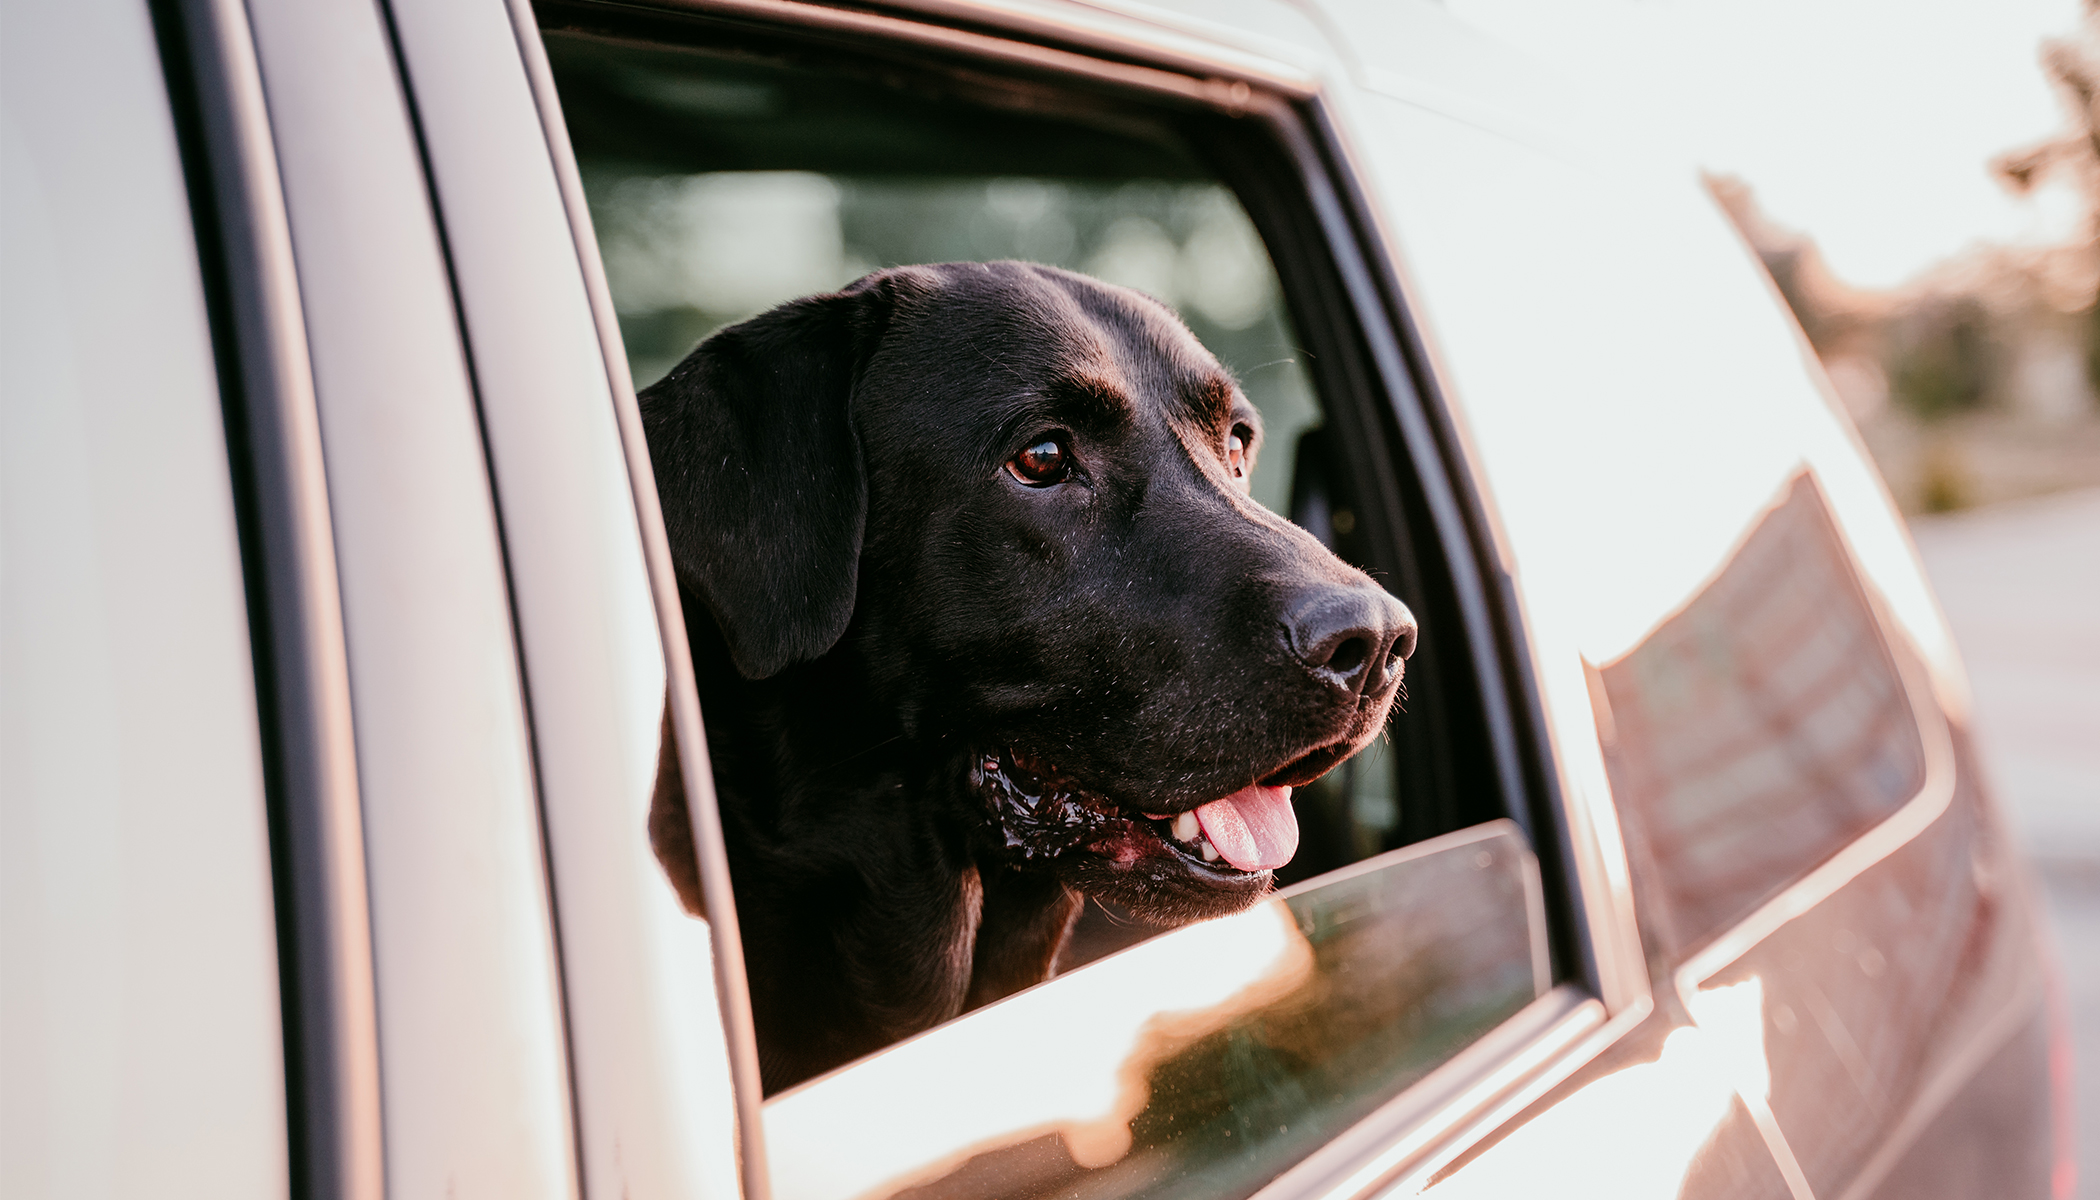 Black Labrador dog looks out of the window of the car.